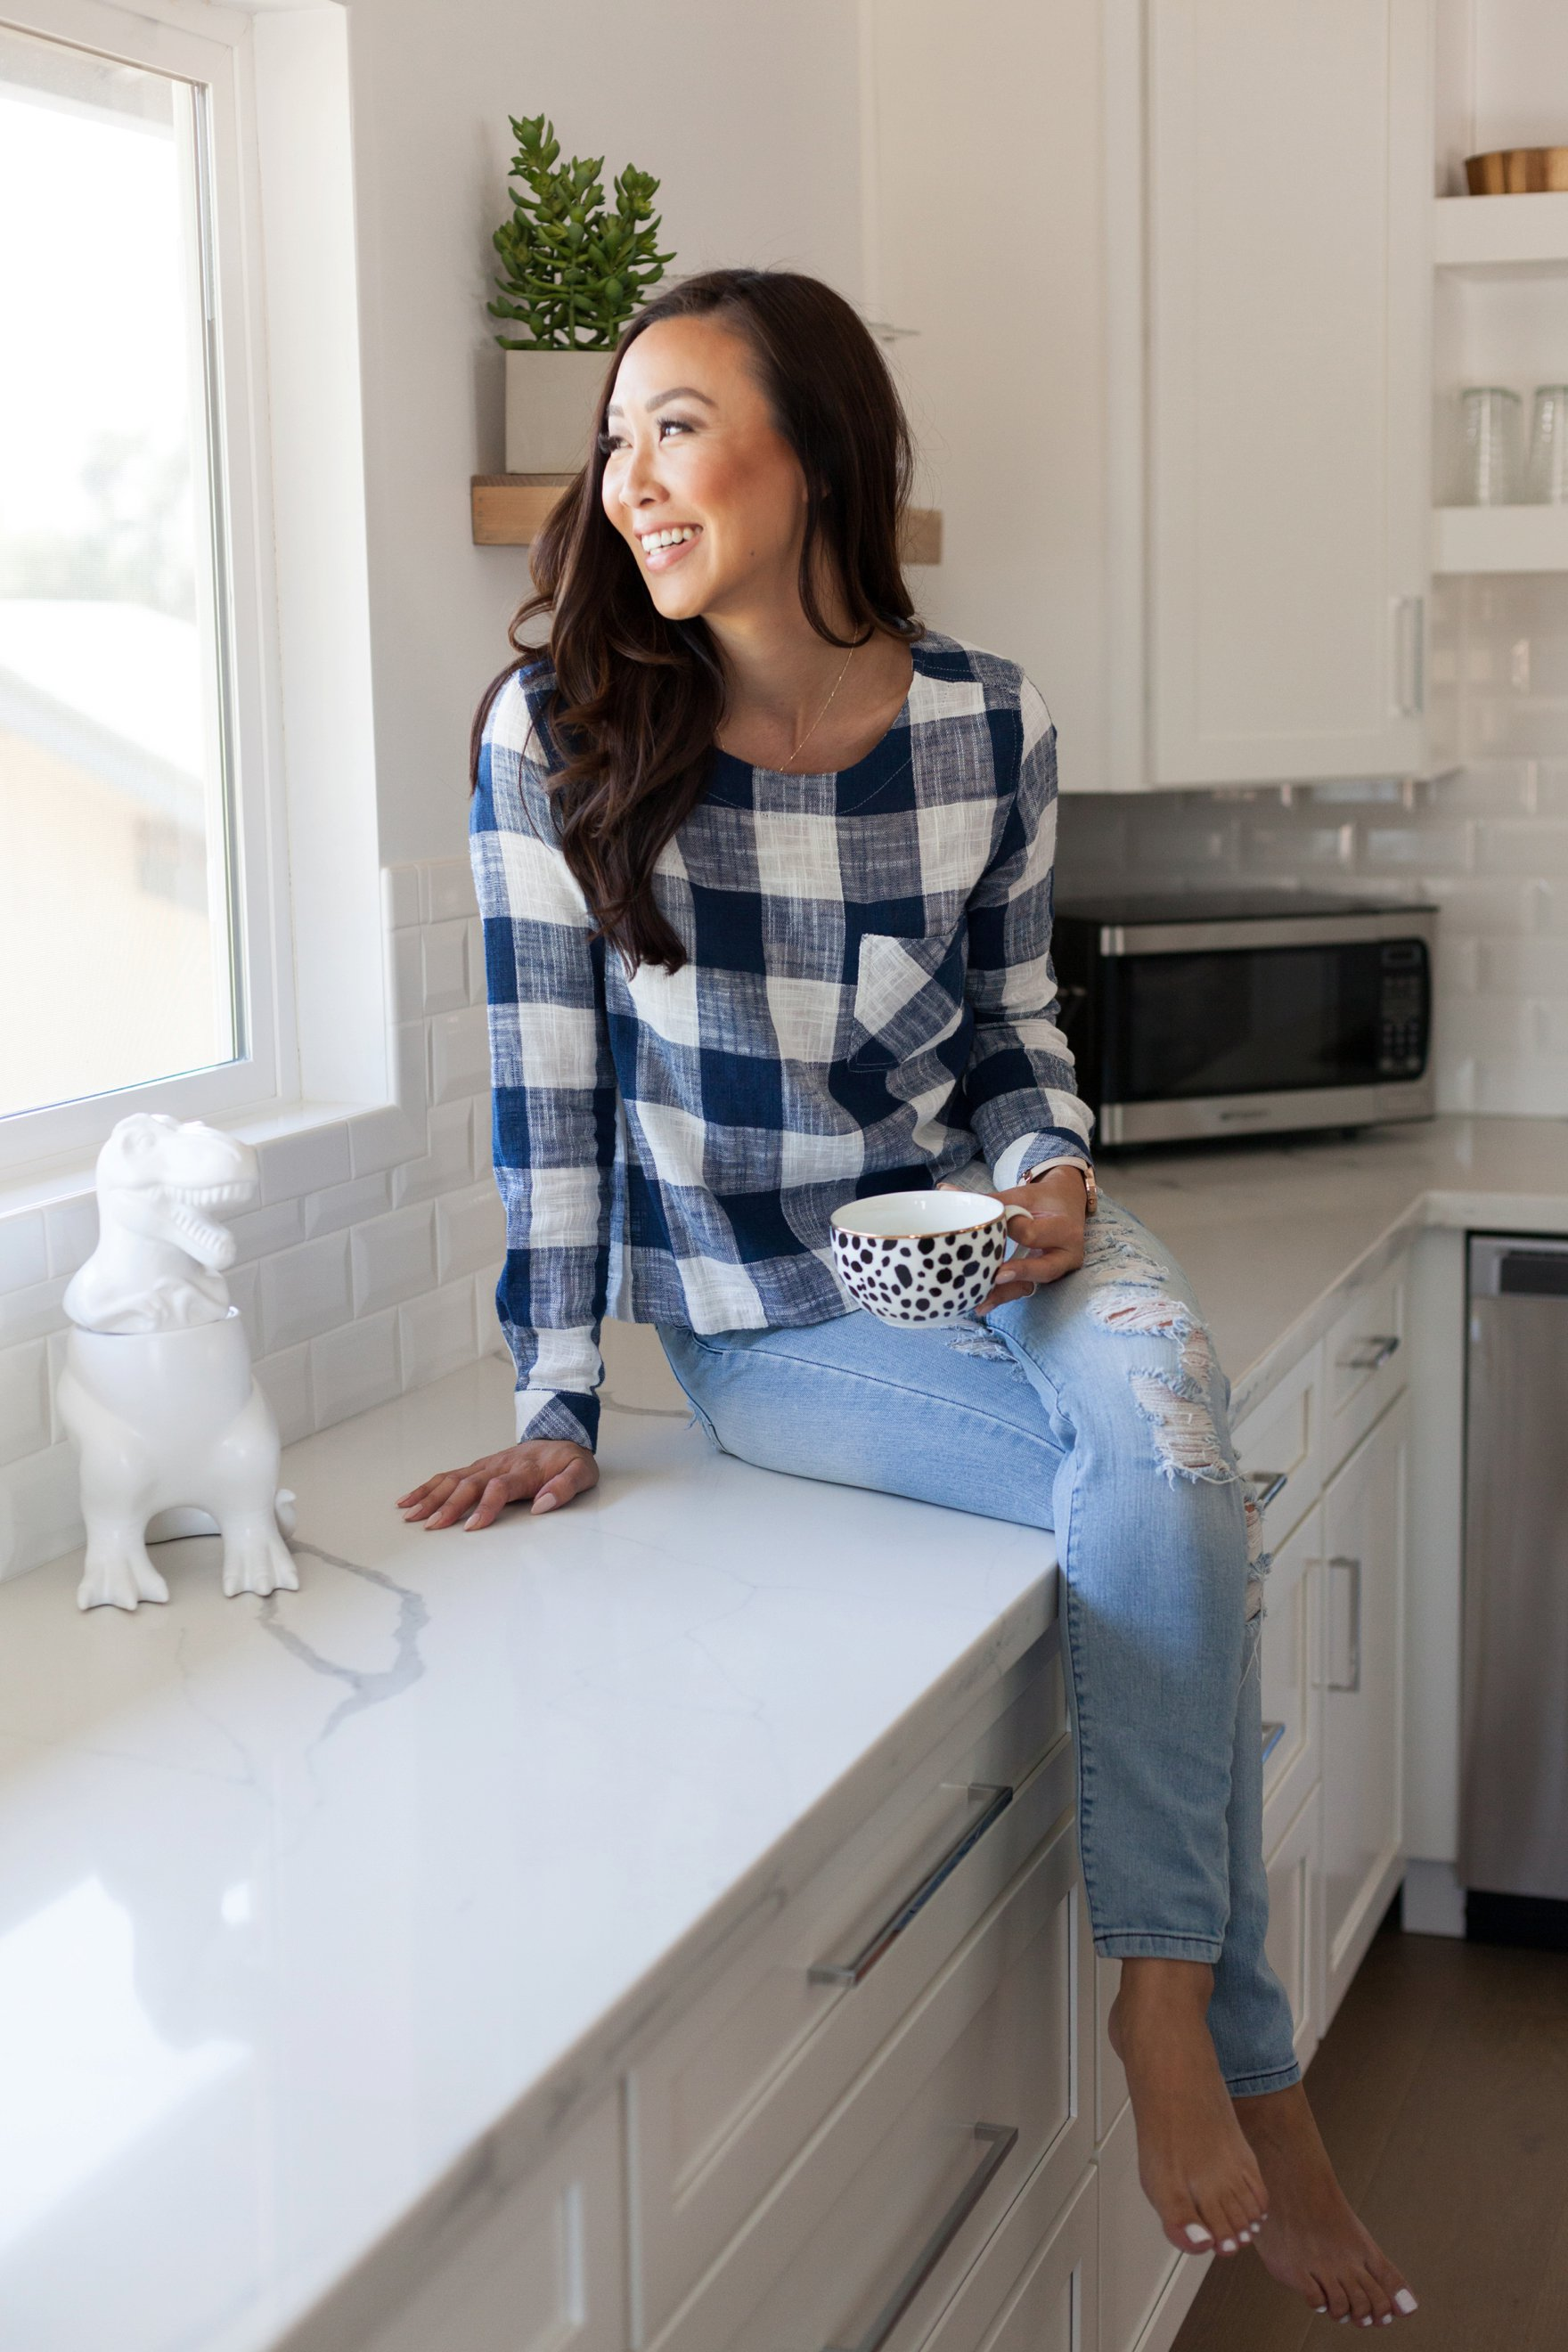 Diana Elizabeth in blue white gingham top on kitchen counter